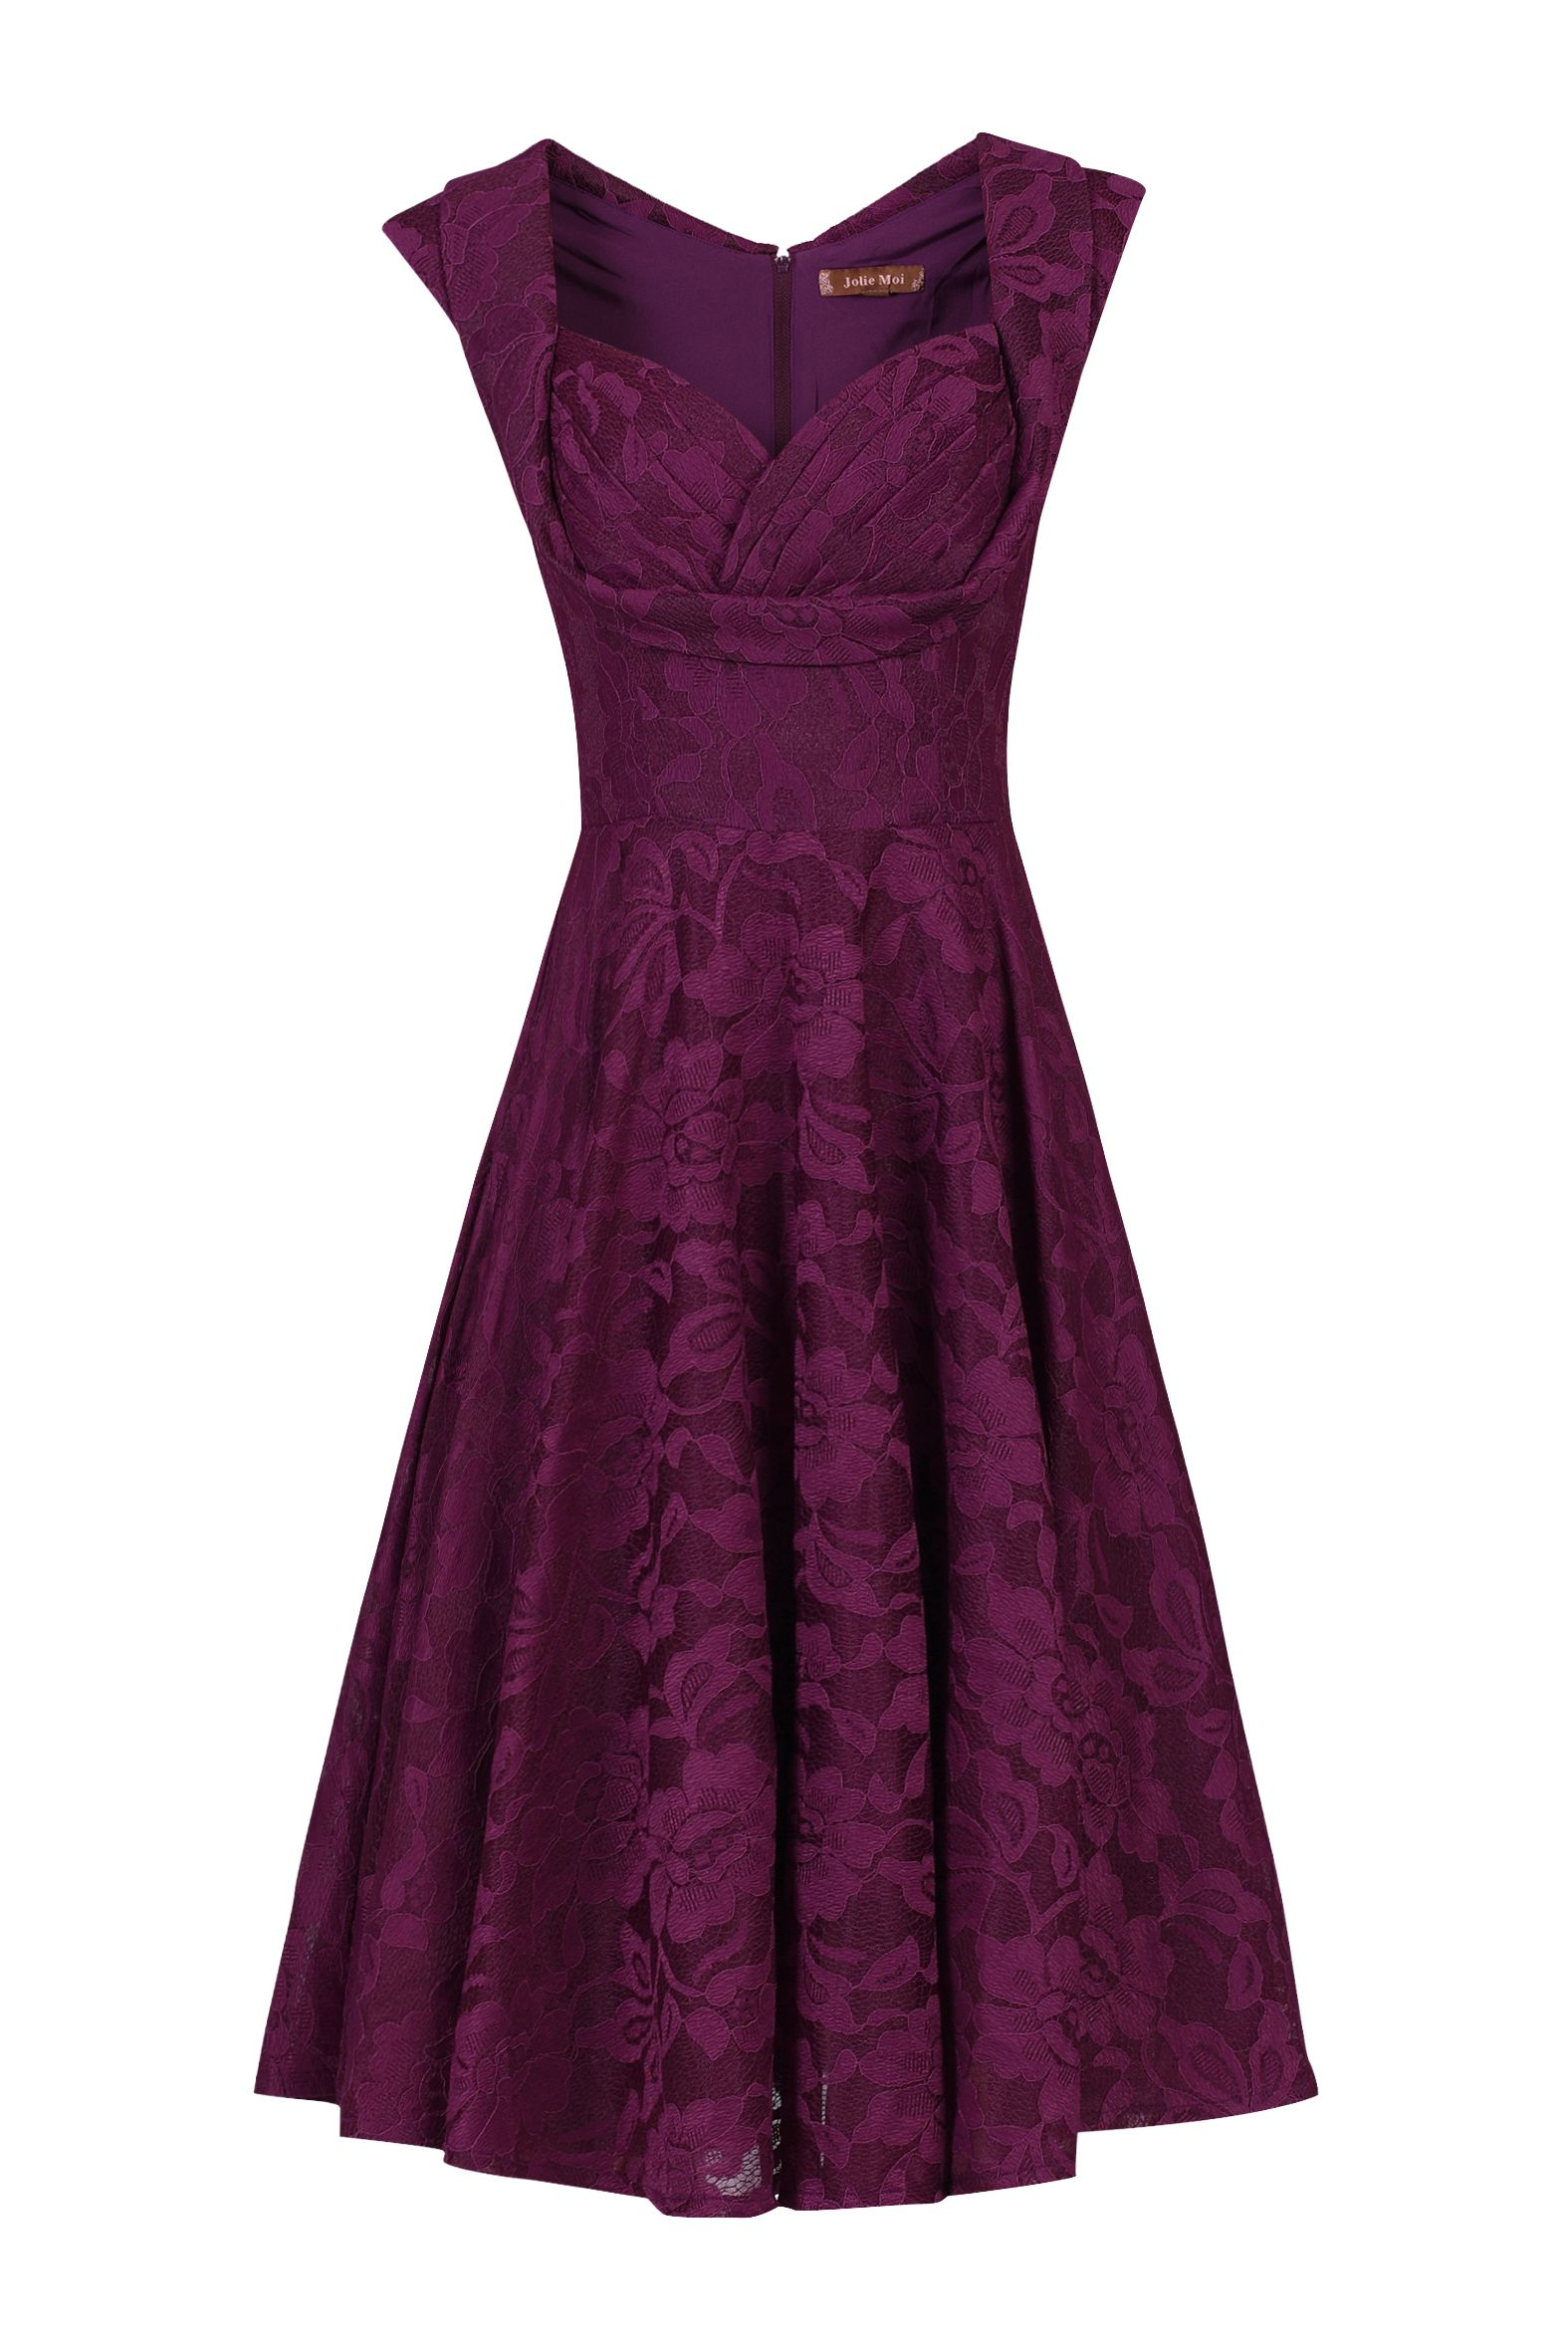 Jolie Moi Ruched Crossover Bust Prom Dress, Dark Purple